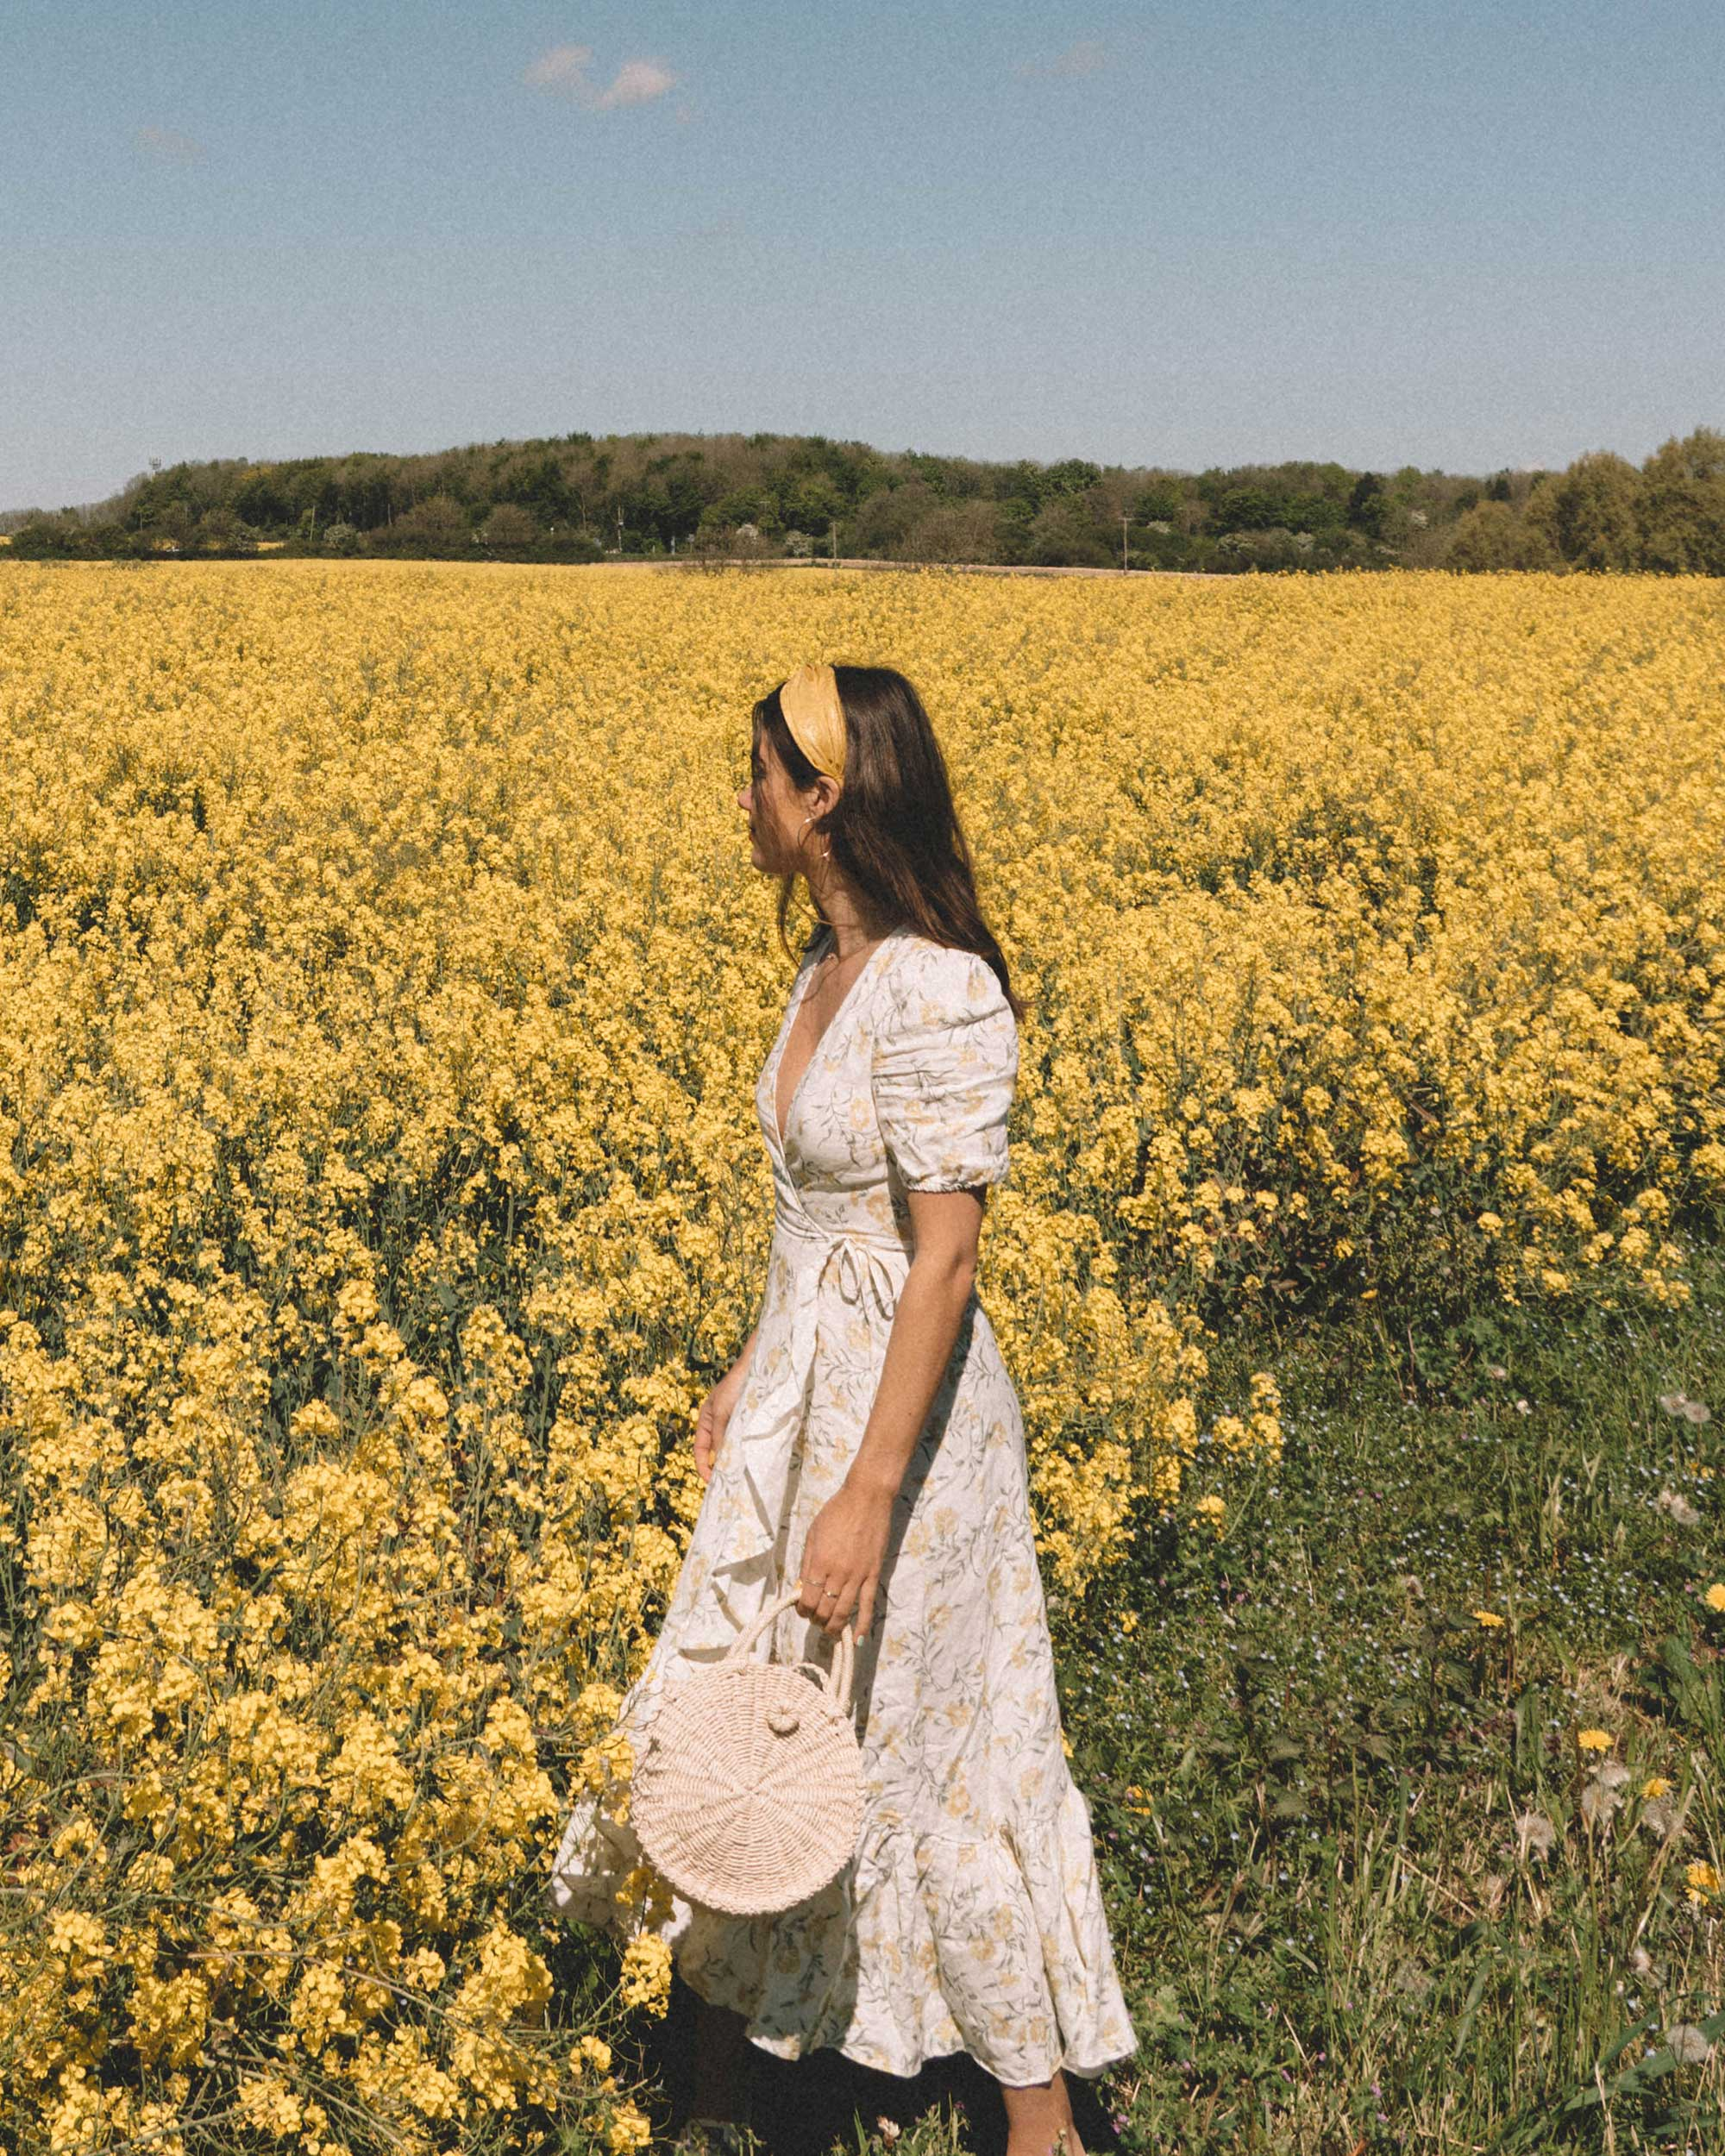 Sarah Butler of Sarah Styles Seattle wears And Other Stories Ruffled Linen Wrap Midi Dress and round woven bag in England Countryside for the perfect floral summer dress | @sarahchristine 5.jpg